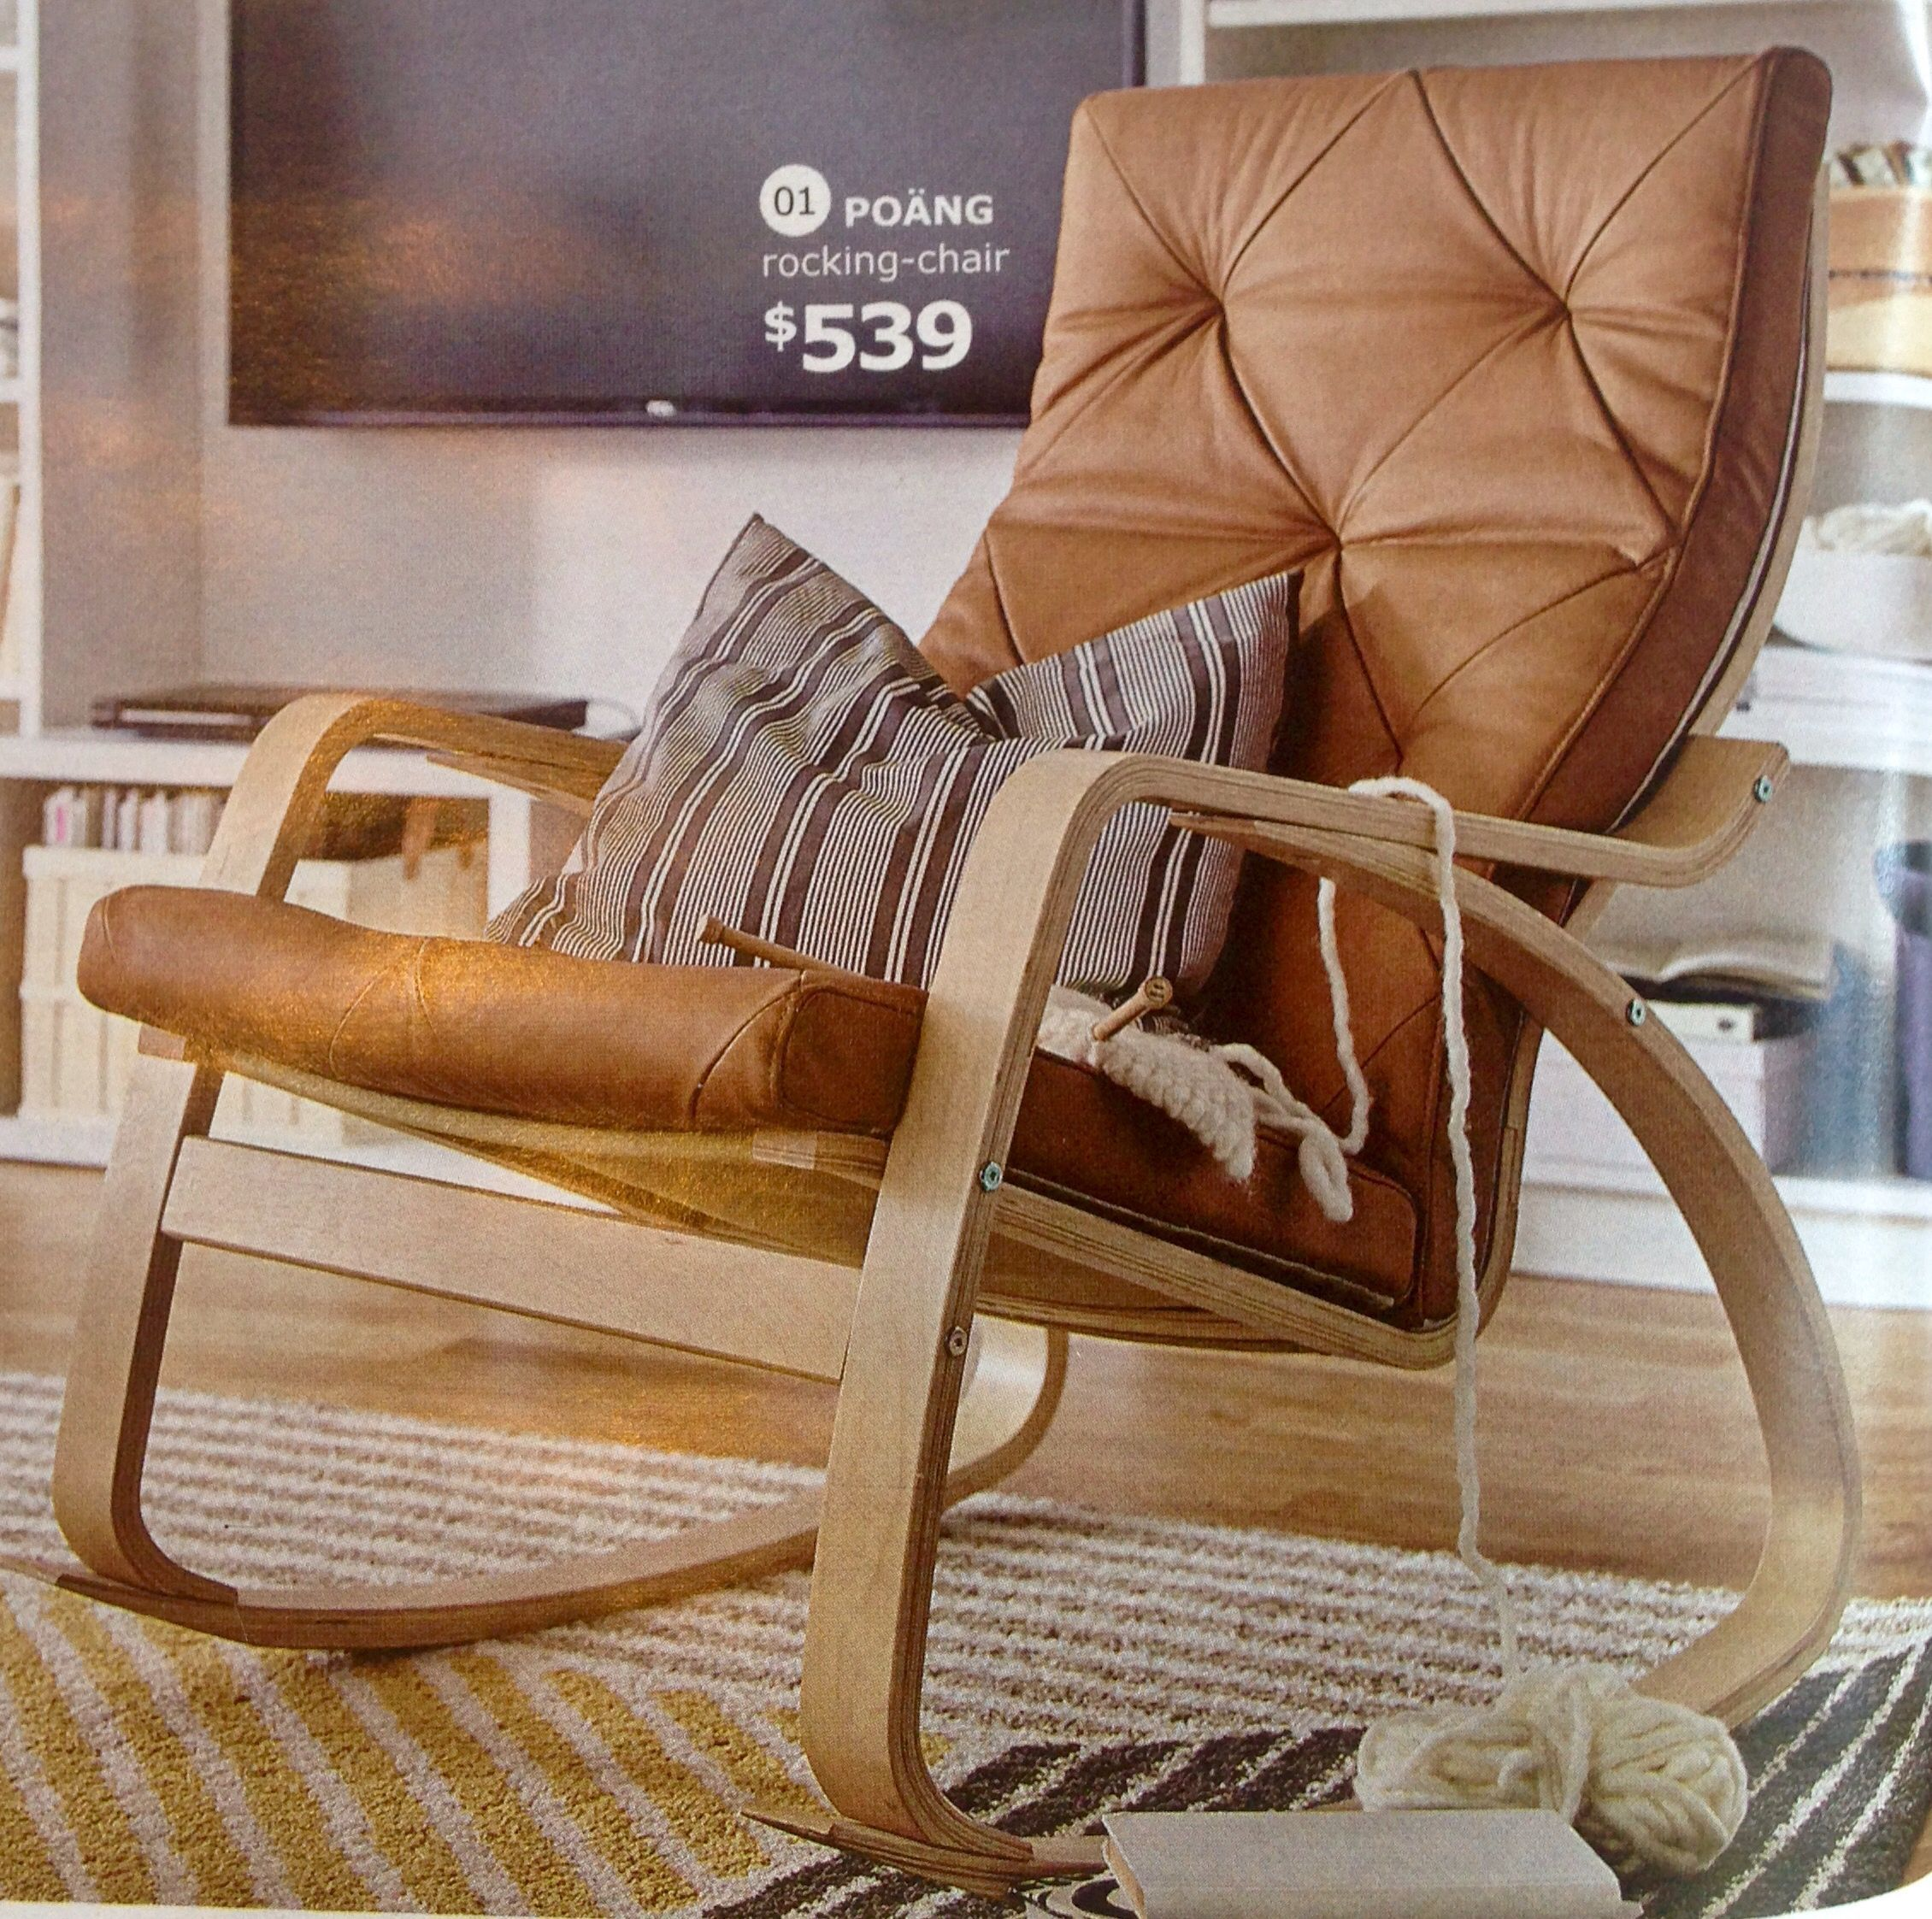 Ikea Poang Rocking Chair Seglora Natural Leather Cover